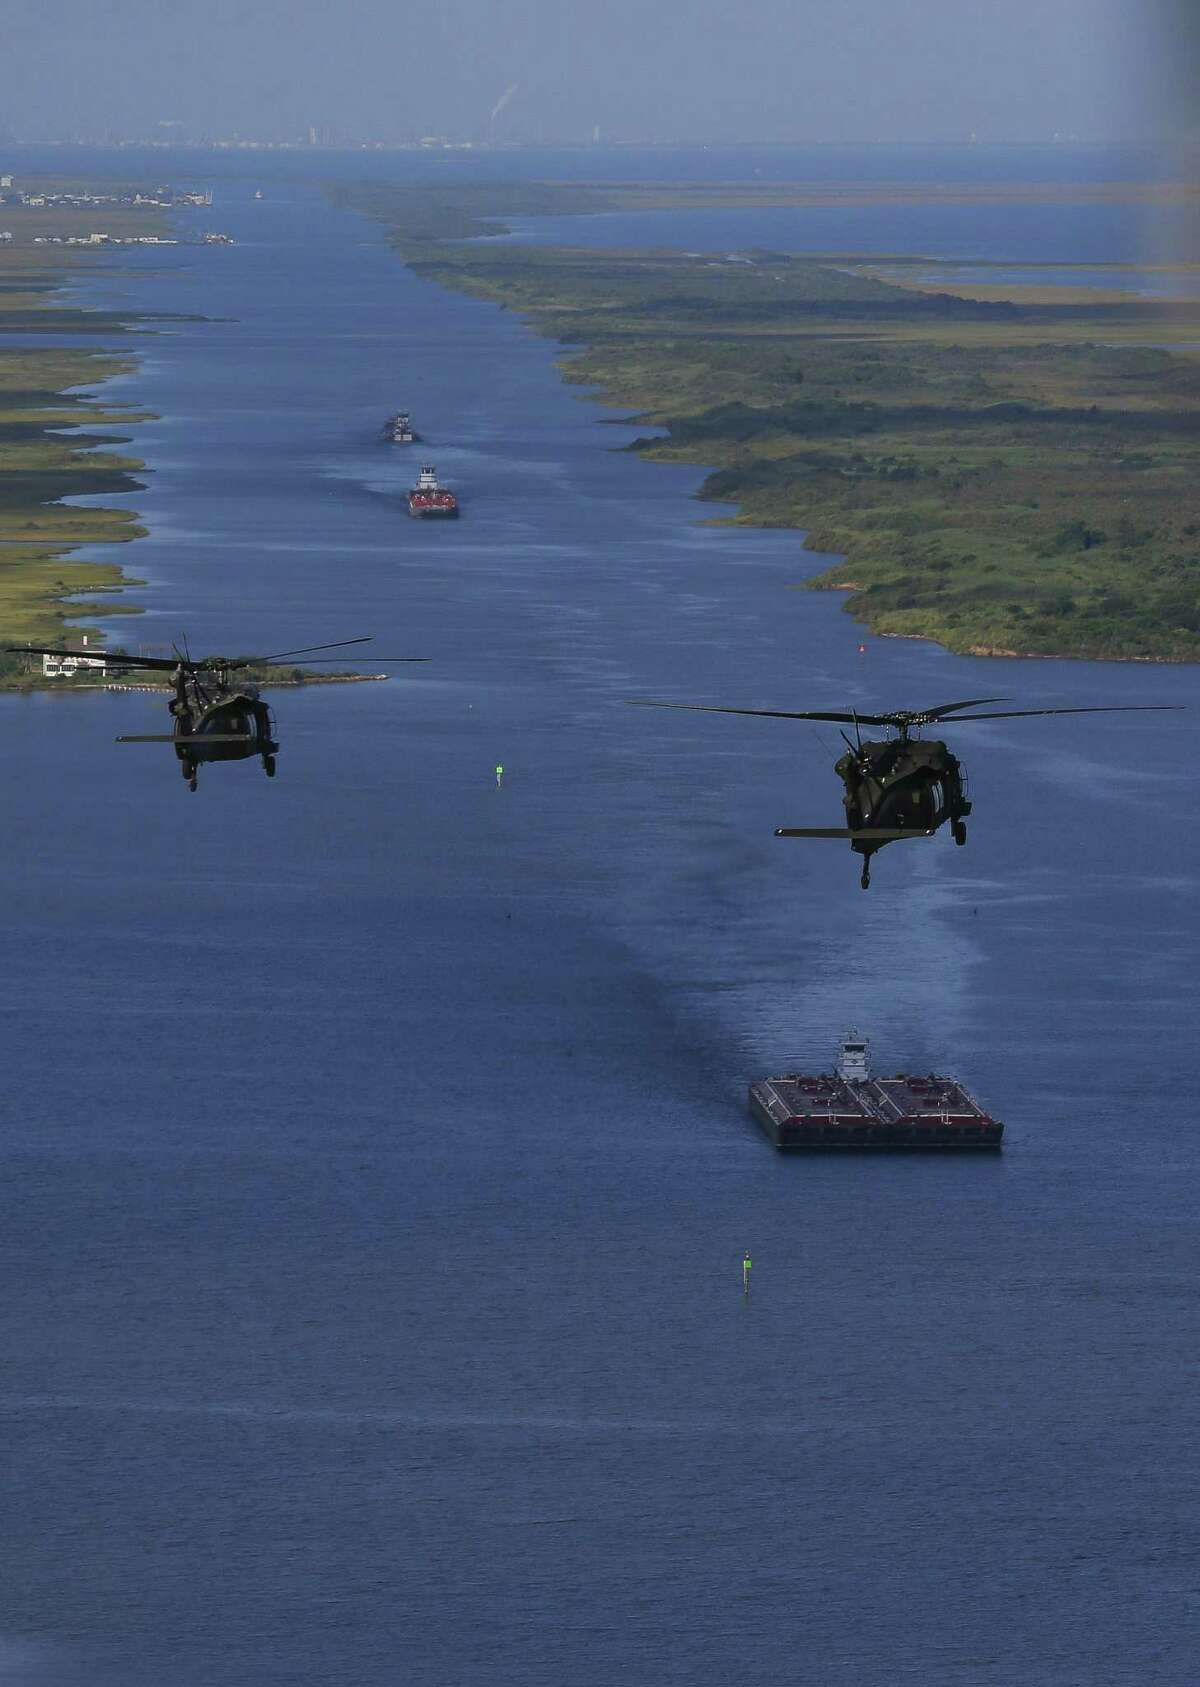 Army Black Hawk helicopters, carrying U.S. Army Corps of Engineers officials, flies over the Bolivar Peninsula Wednesday, September 7, 2016.